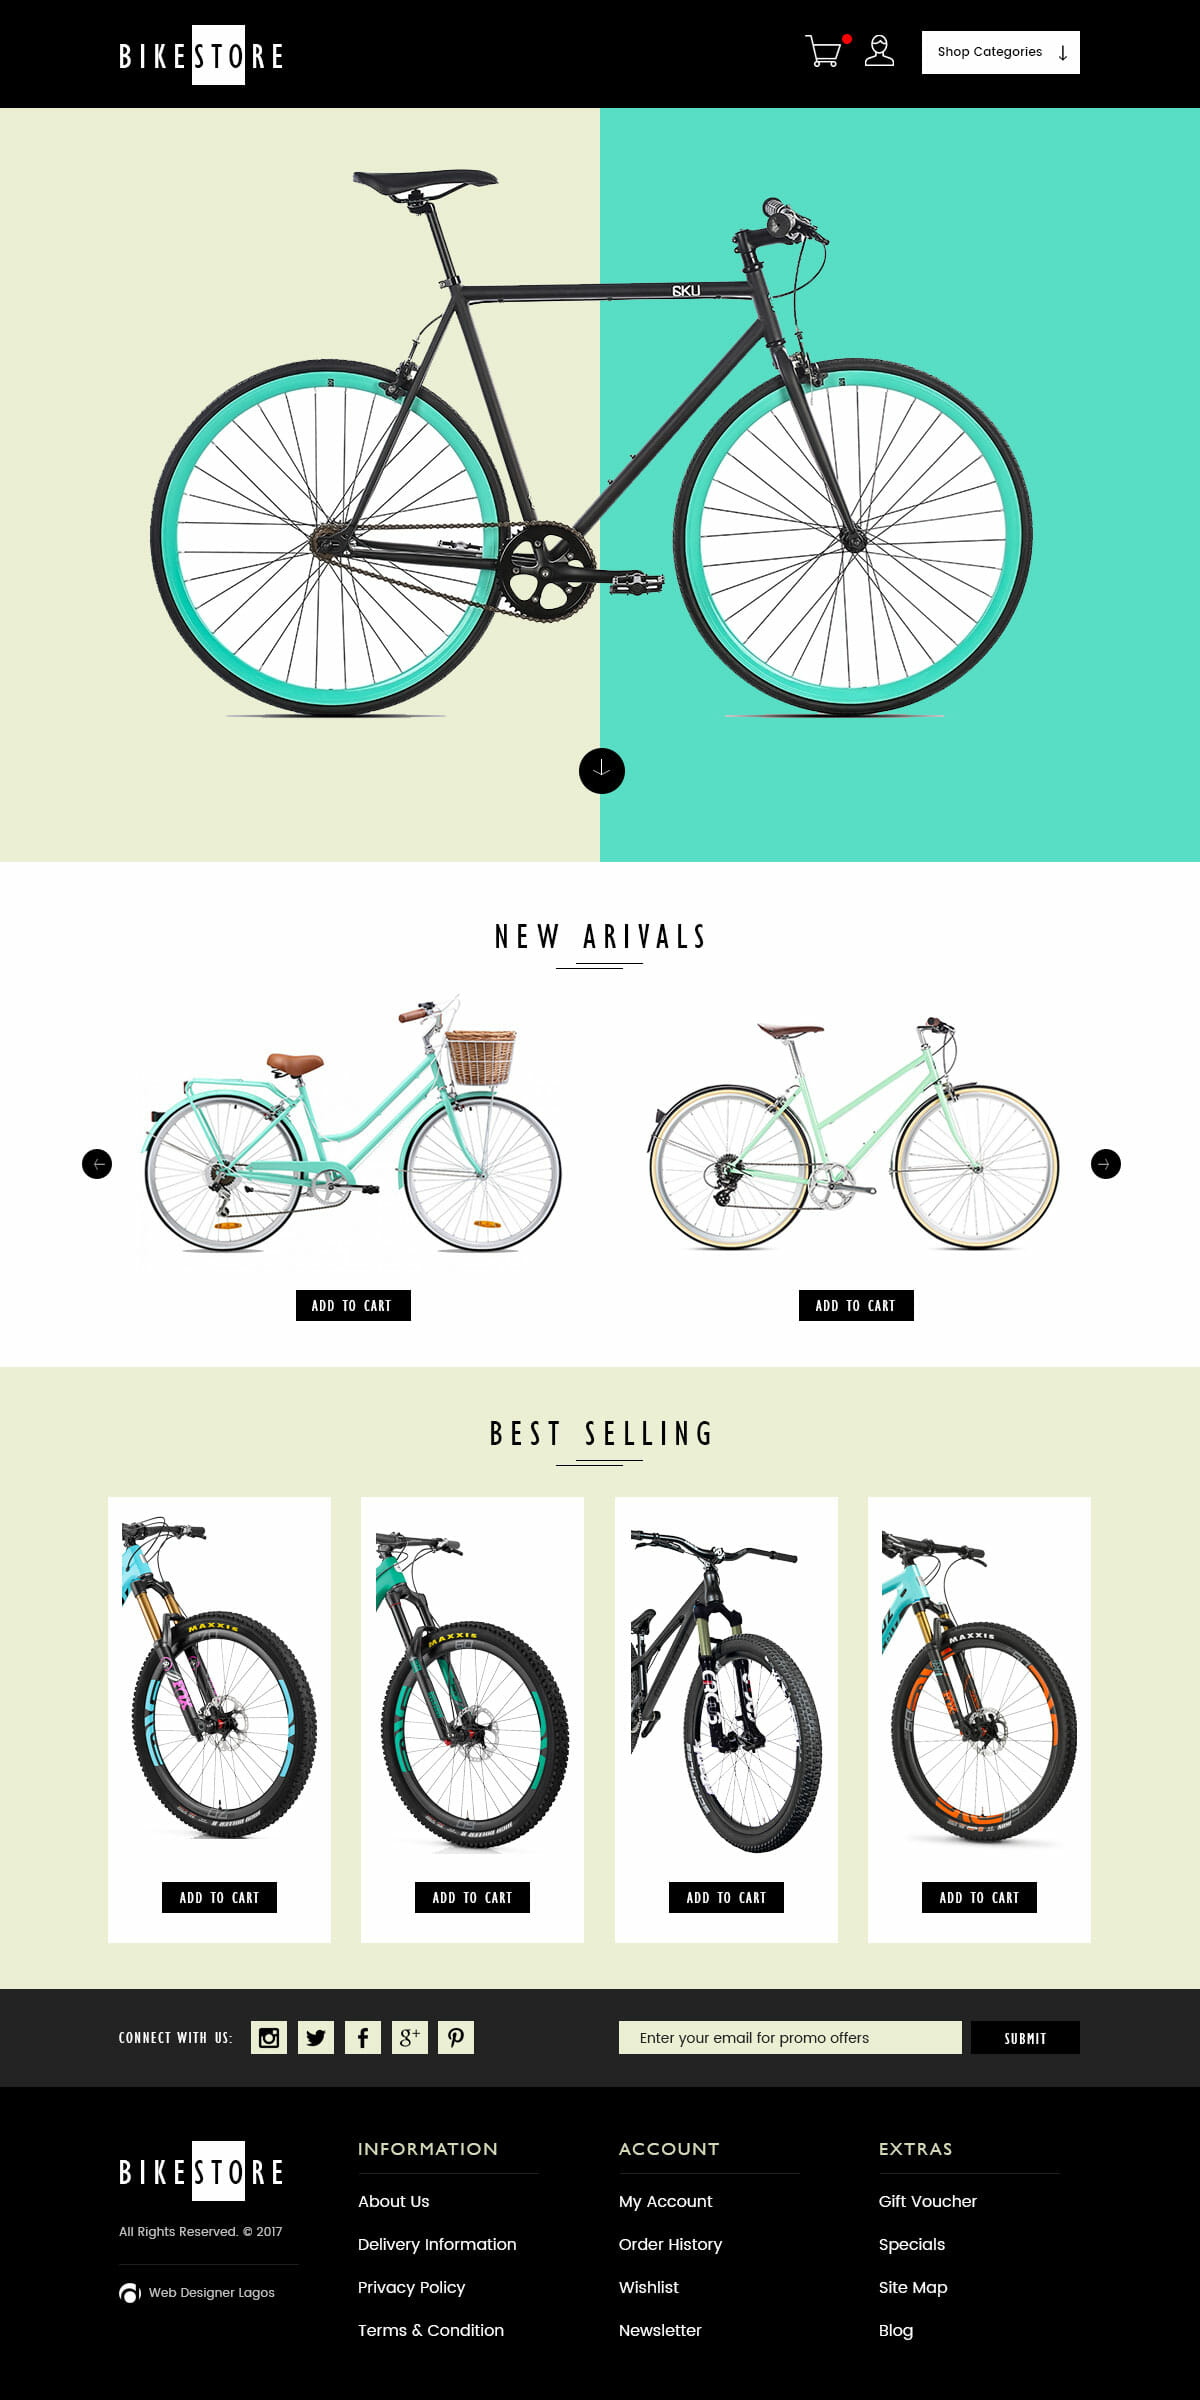 bikestore ecommerce website design by DientWeb - Desktop view